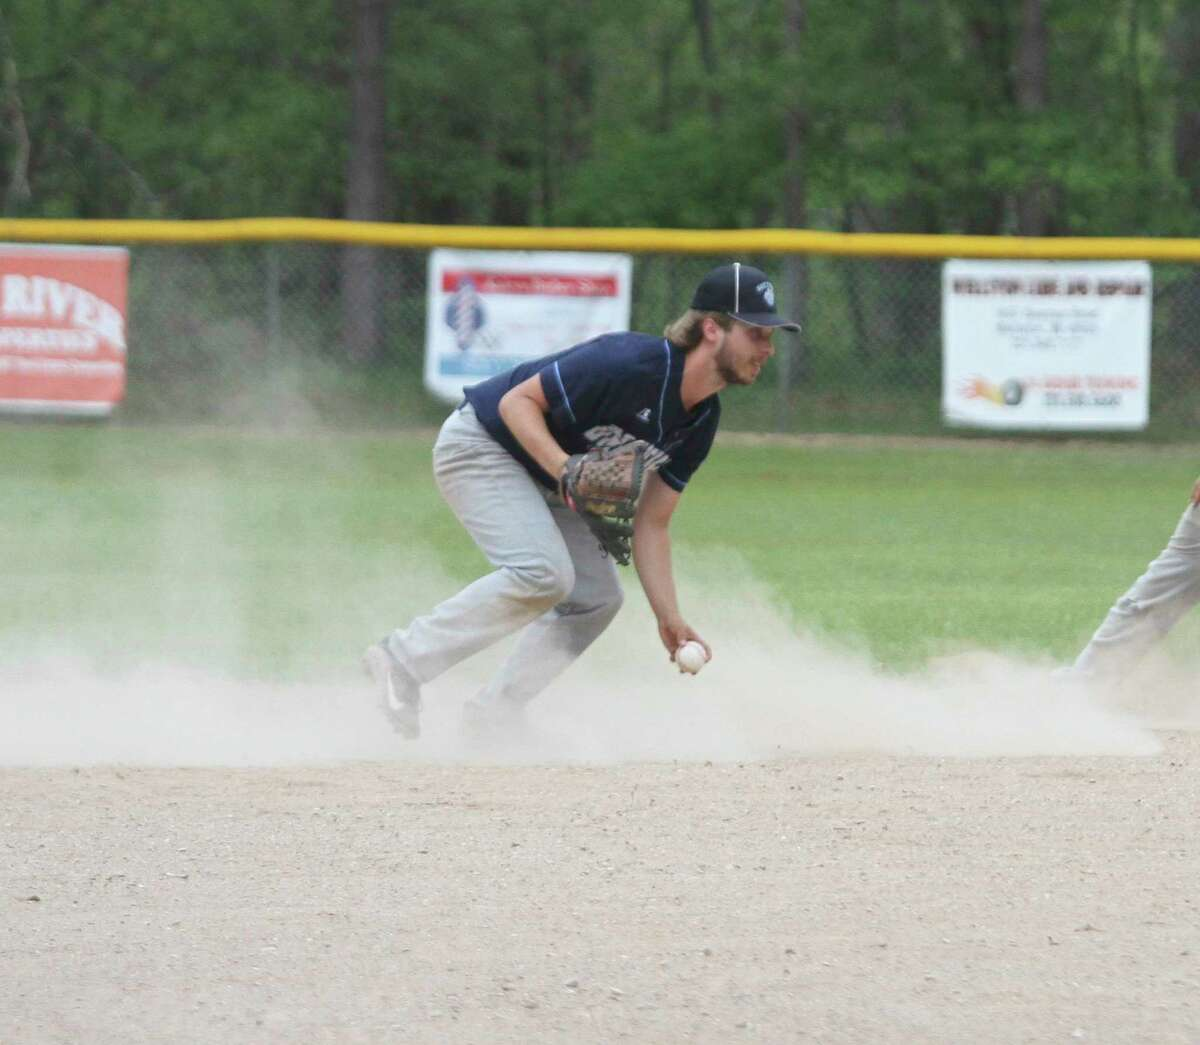 Brethren senior Skylar Wojciechowski scoops up a grounder during the Bobcats' sweep of Pentwater on Friday. (Dylan Savela/News Advocate)